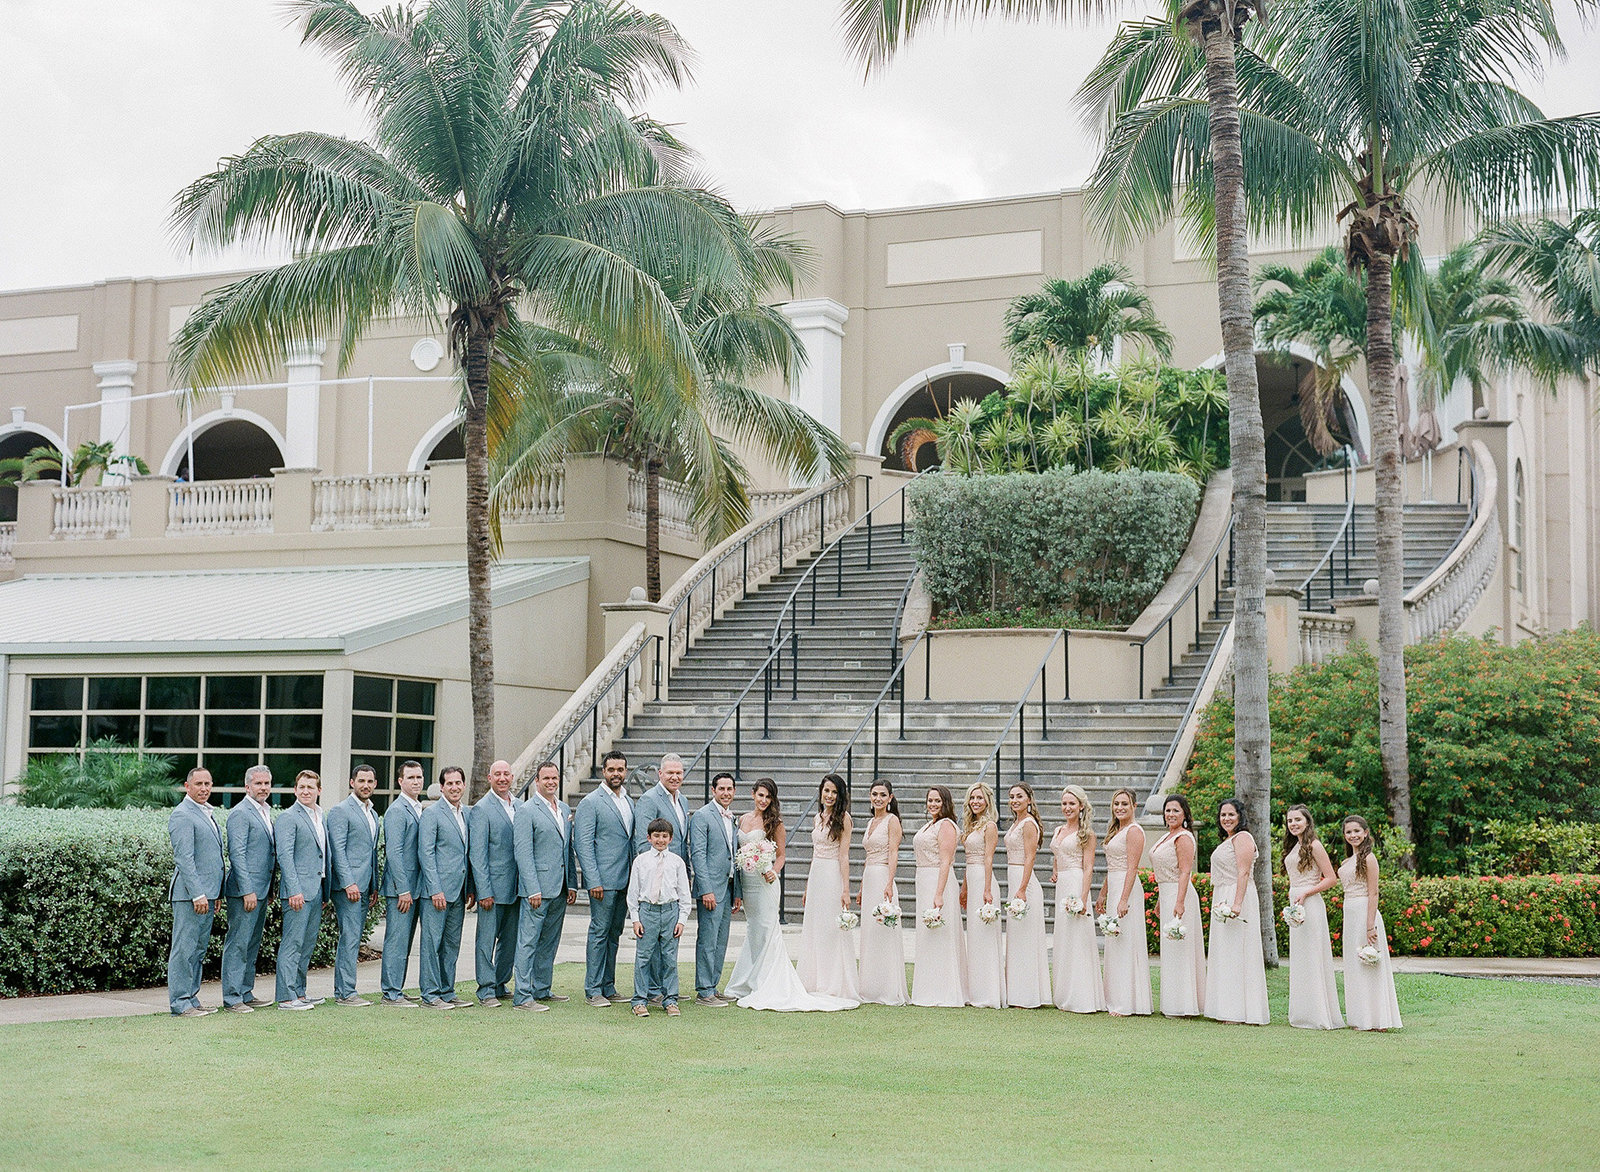 20180810-Pura-Soul-Photo-Ritz-Grand-Cayman-Wedding-10